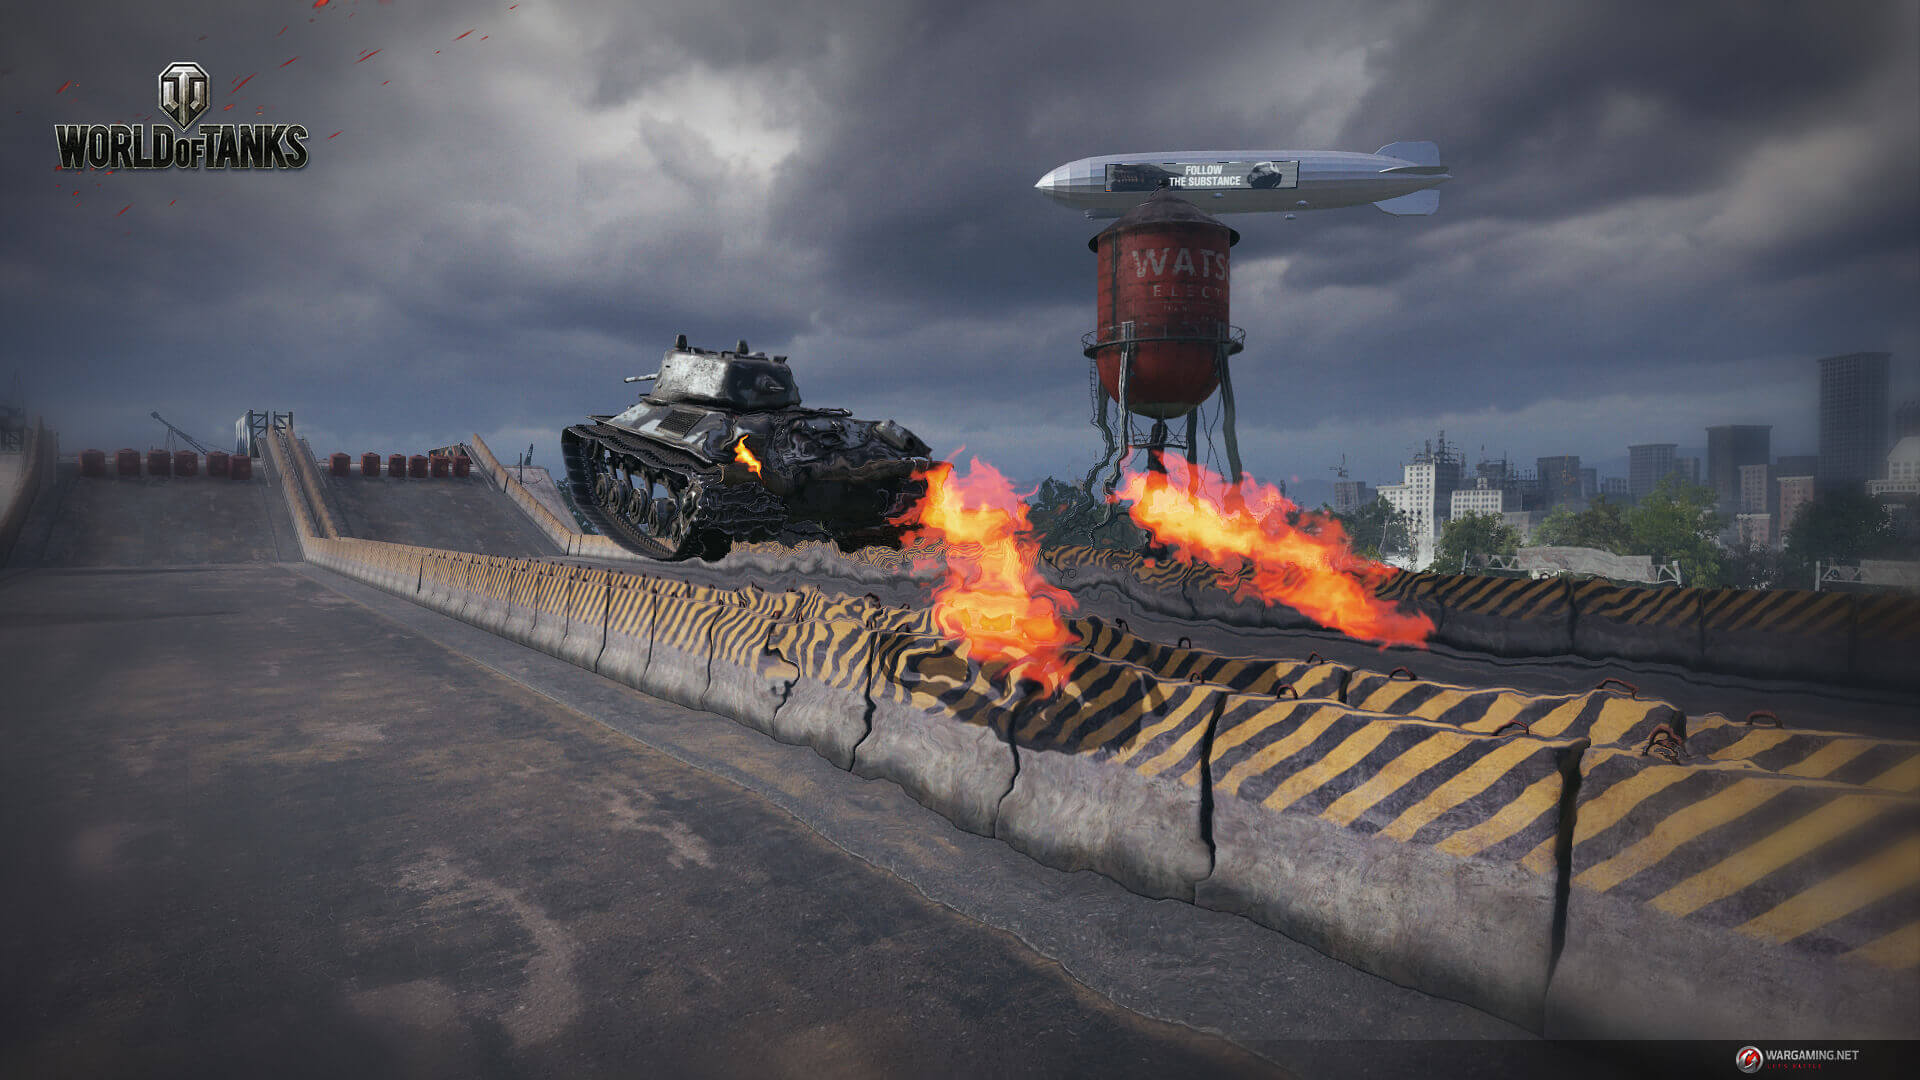 Обои World of tanks, мир танков, wot, chaffee sport, wargaming net, wg. Игры foto 10